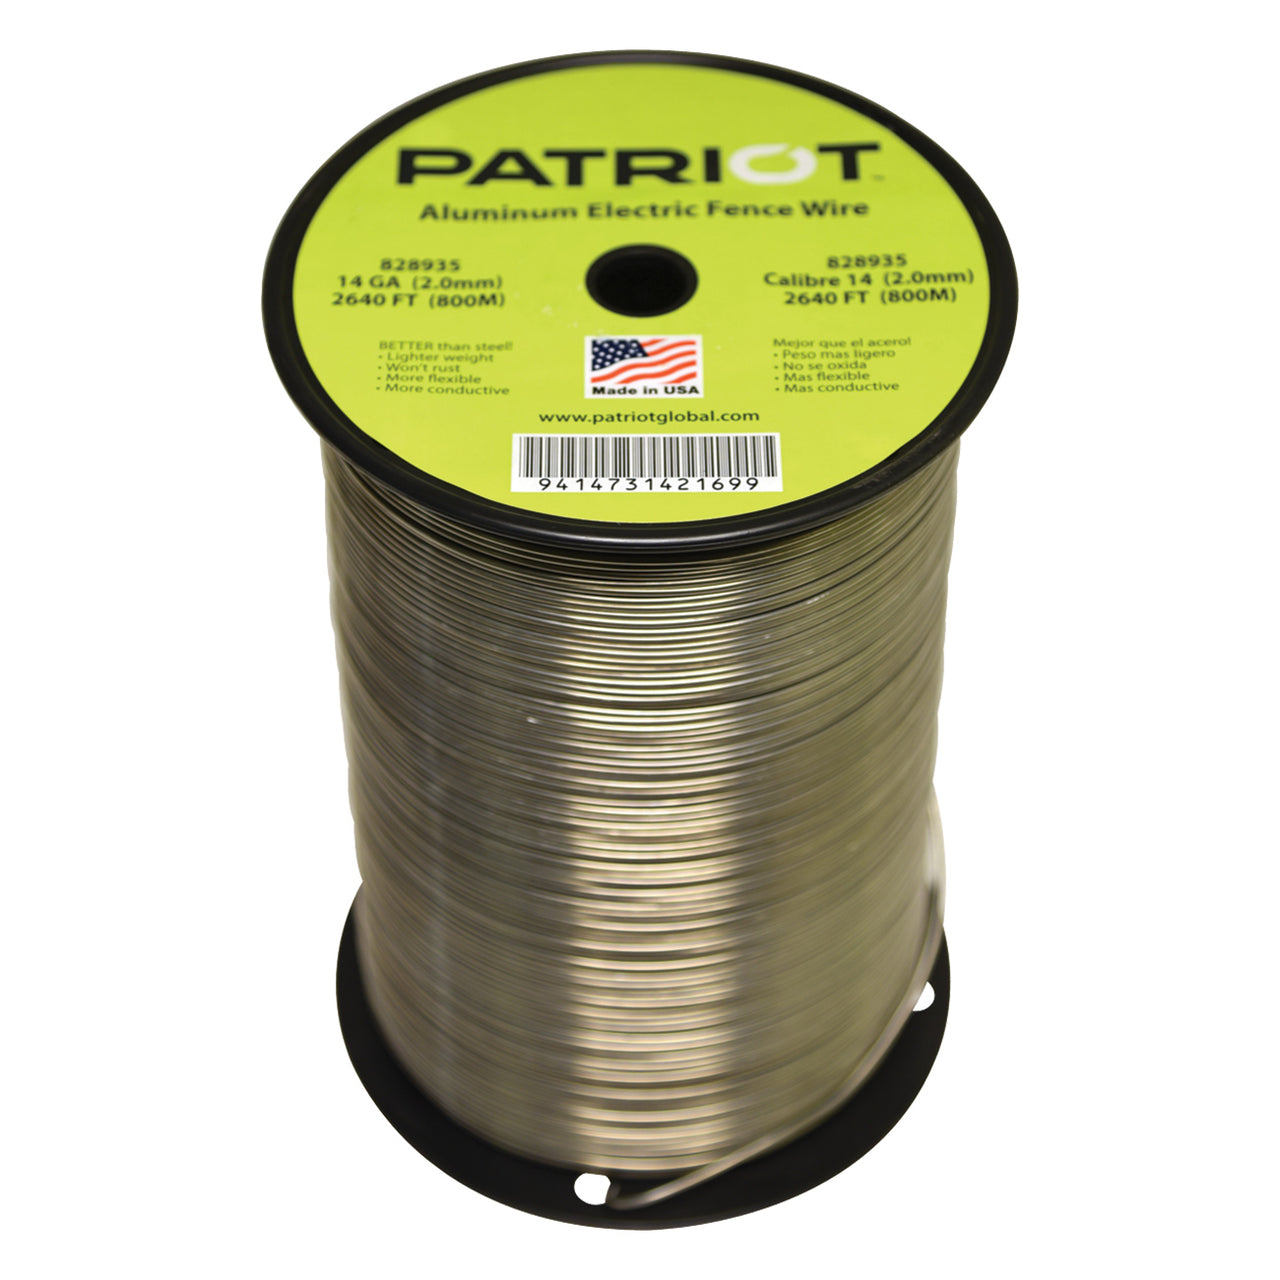 Patriot 14 Gauge Aluminum Wire 2640 Remedy Animal Health Store To Copper Wiring